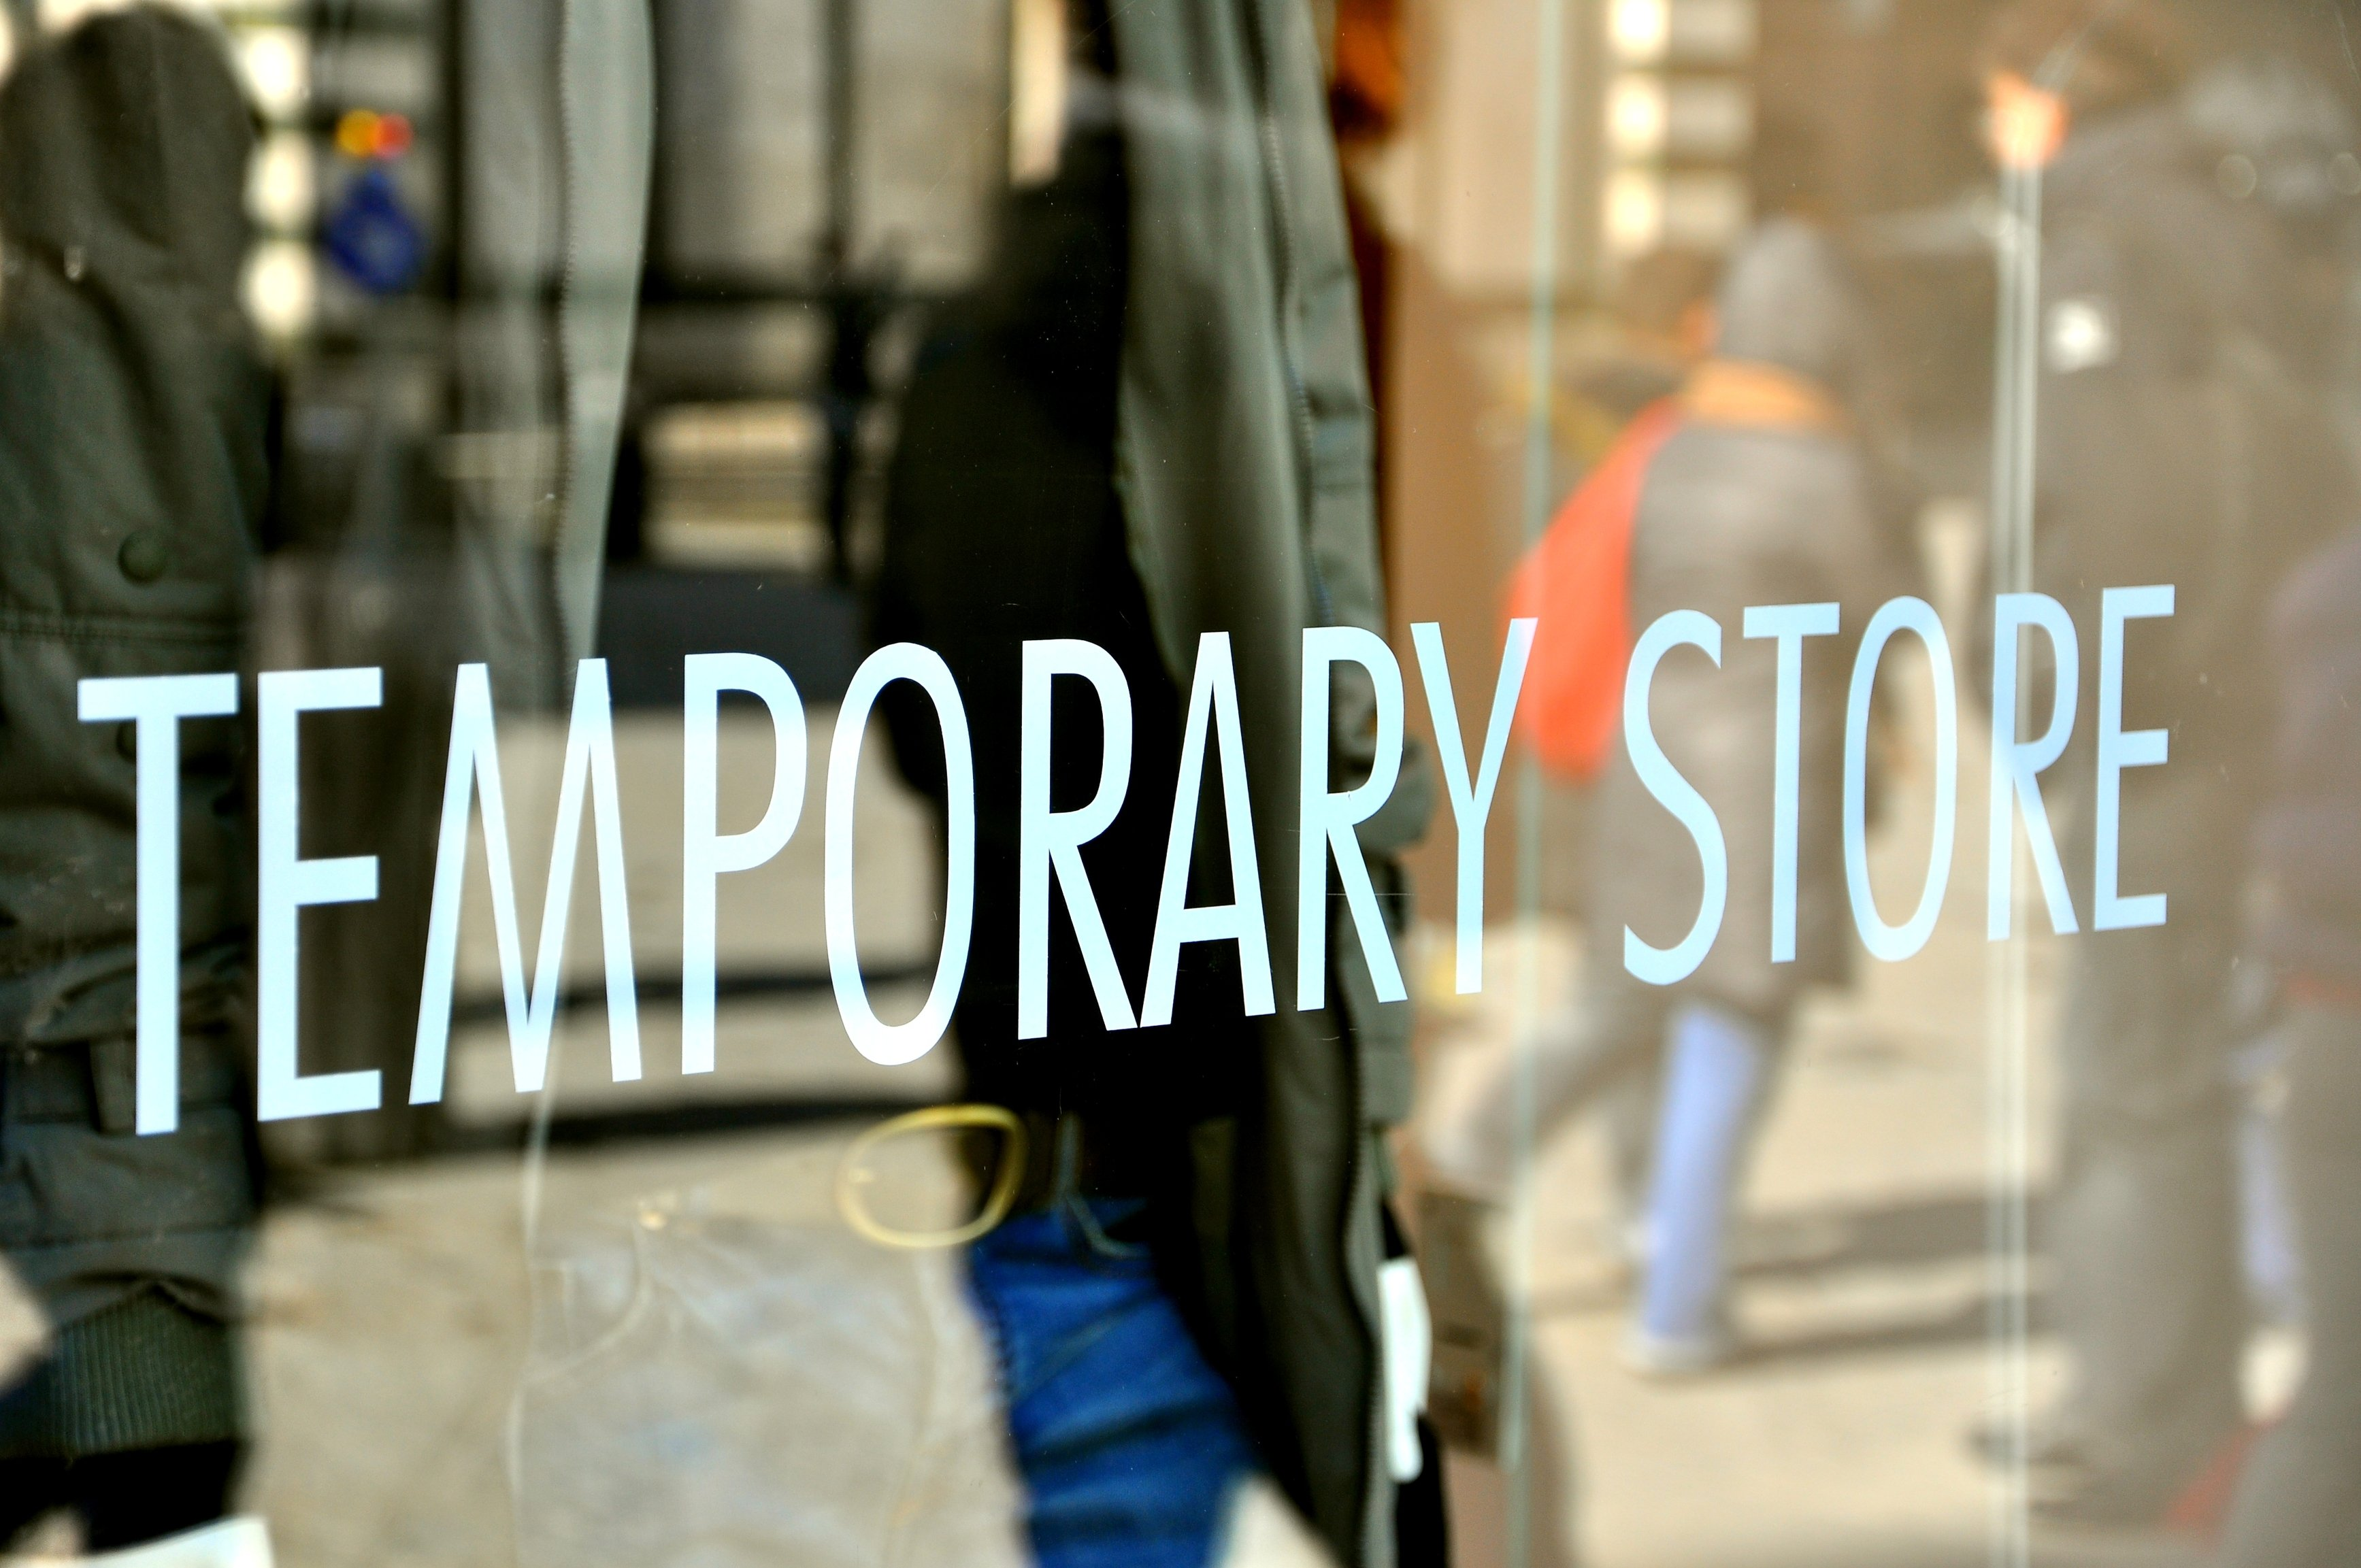 store window with temporary store written on it